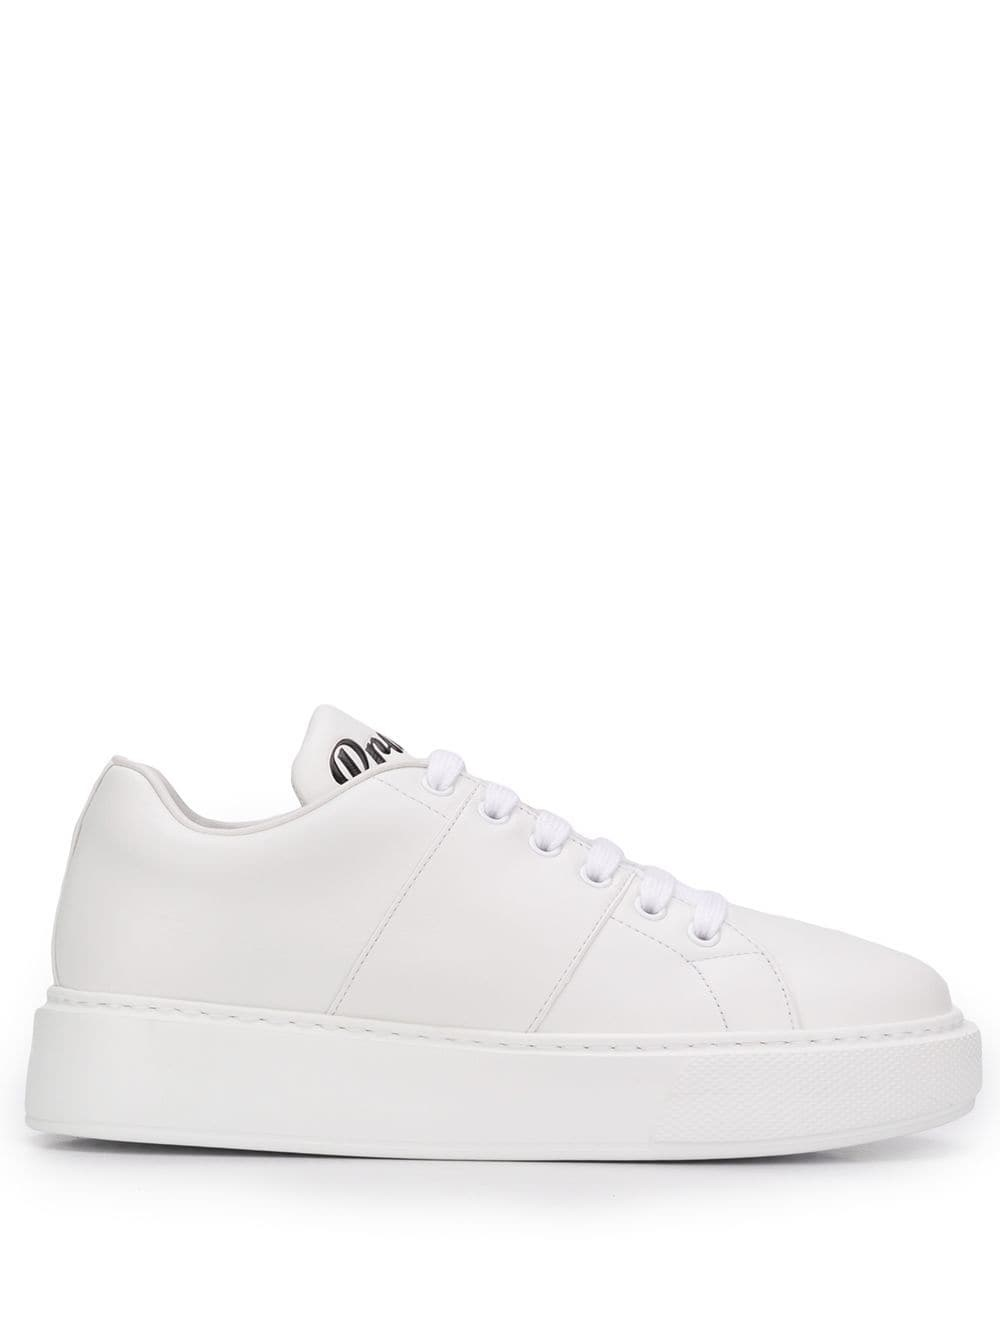 ae4be7cd06599 prada SNEAKERS available on montiboutique.com - 27608